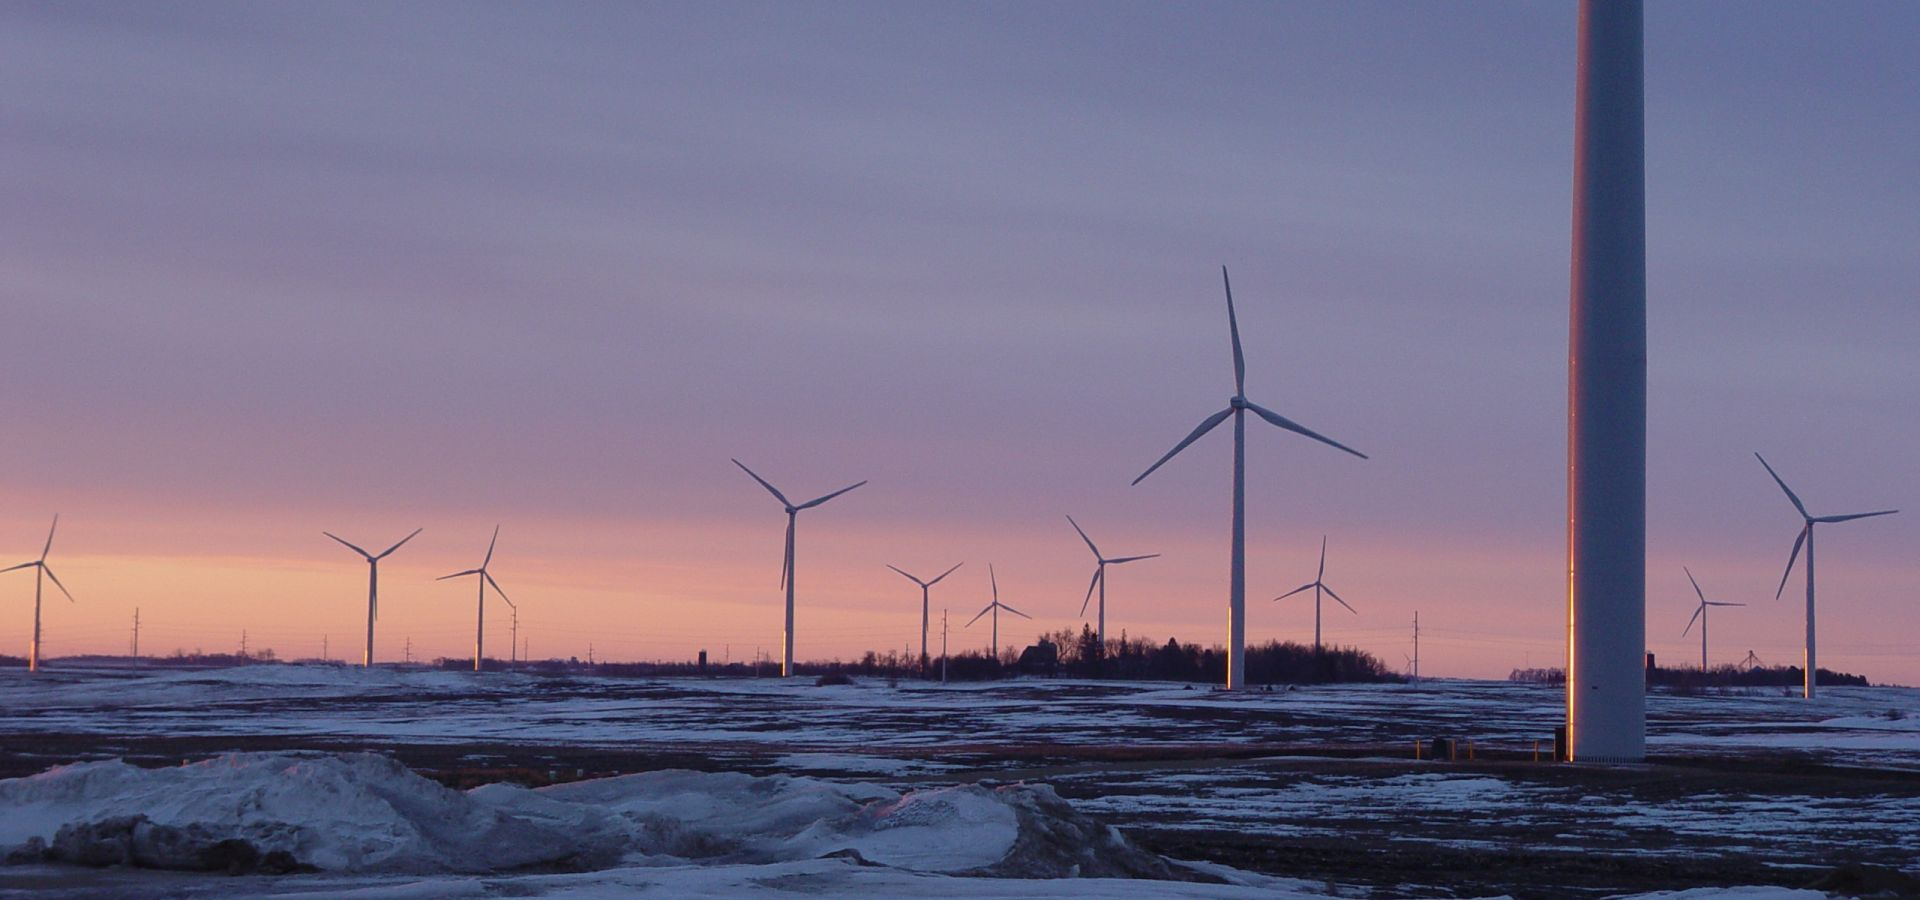 The Fenton wind park in Minnesota at sunset